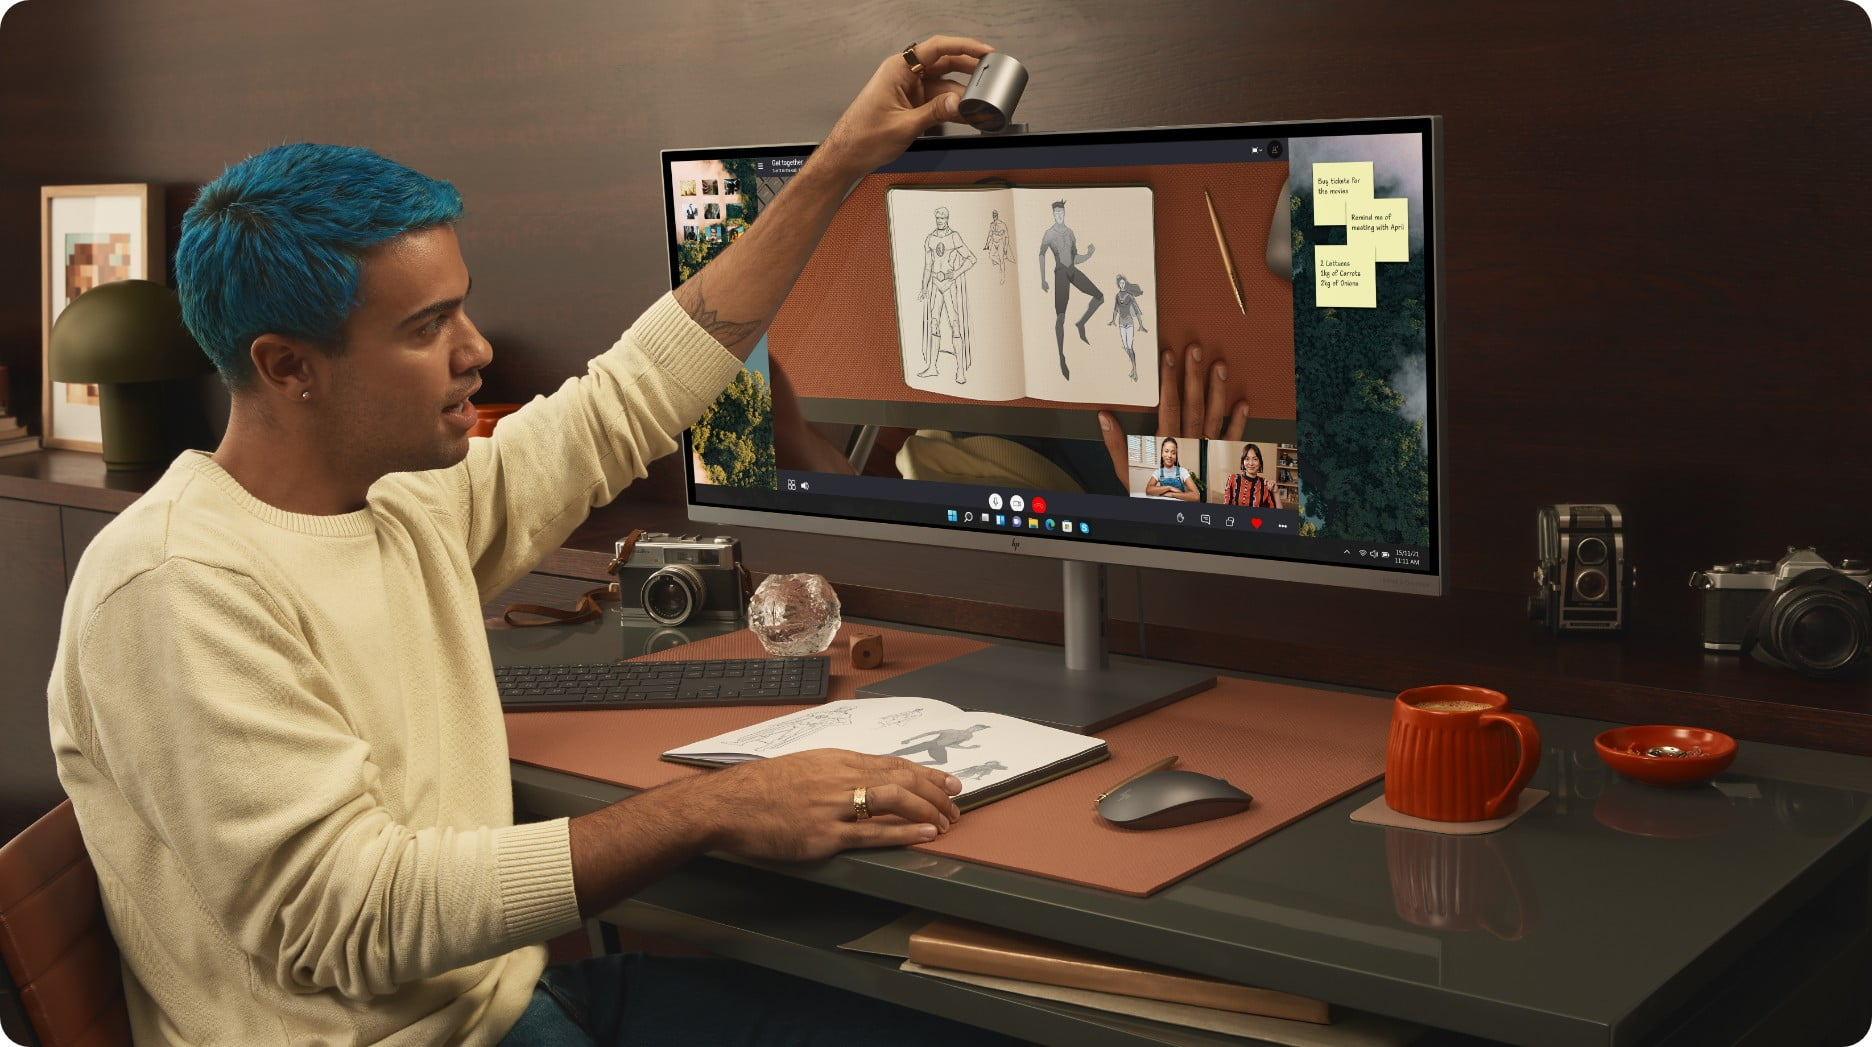 A man is adjusting a camera that is placed at the top of an HP ENVY 34-inch All-in-One Desktop